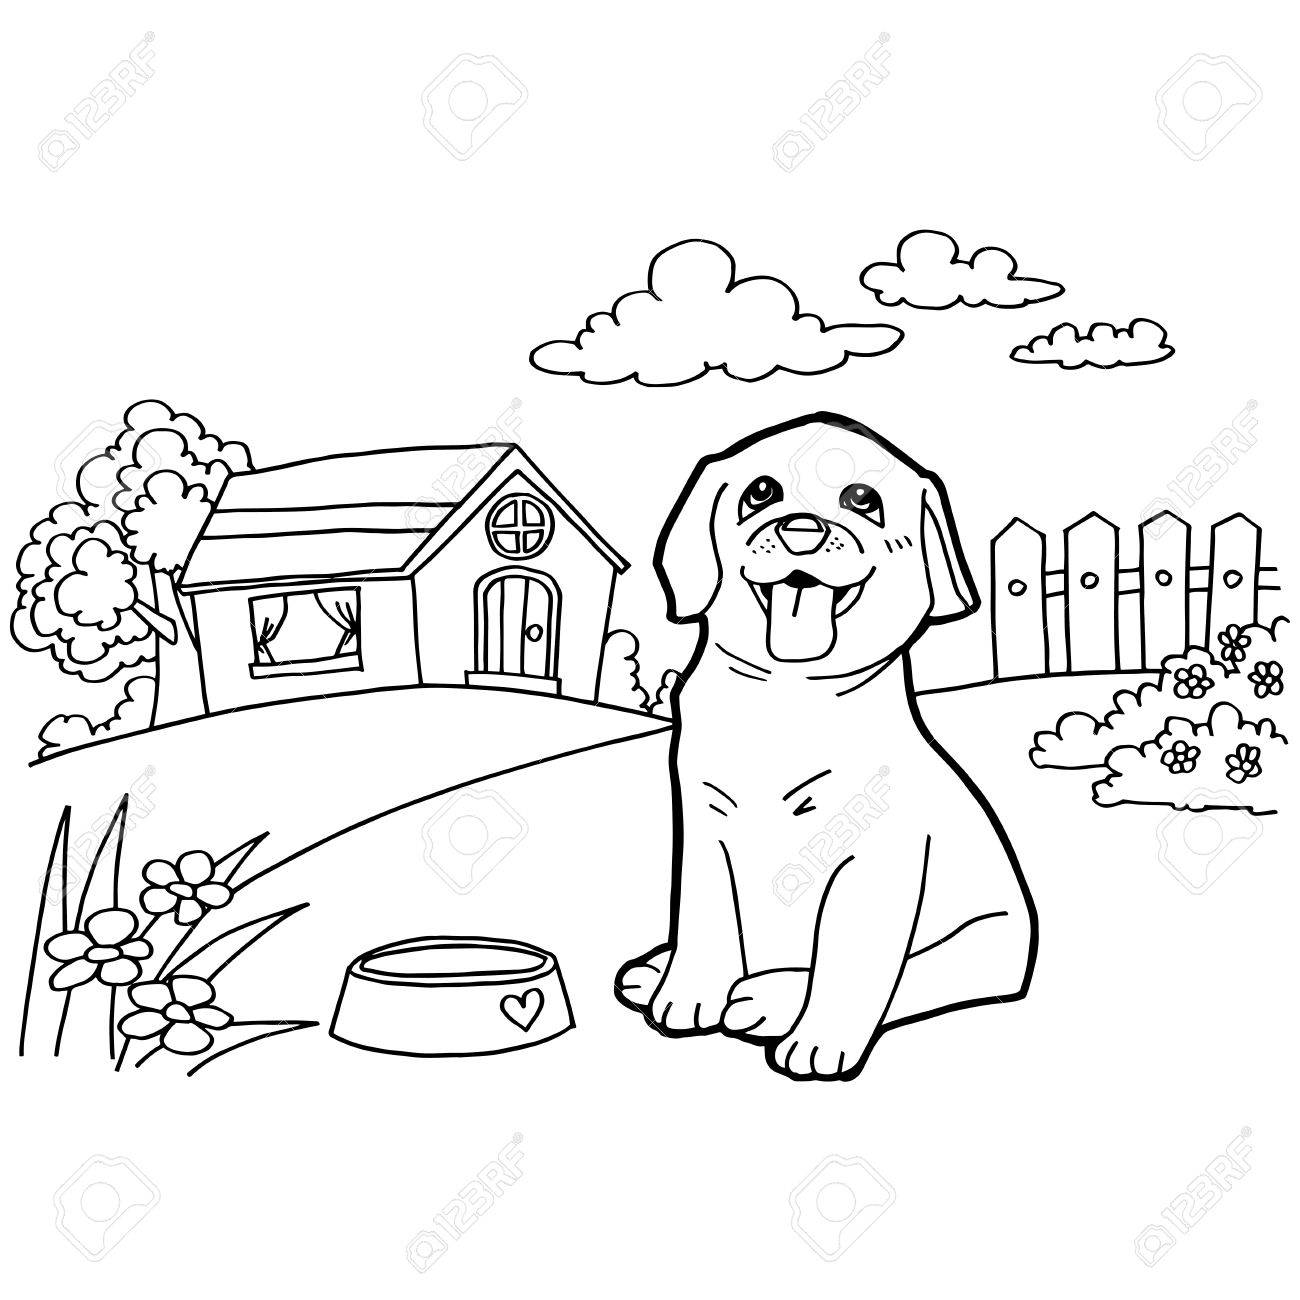 Coloring Book With Dog And Landscape Royalty Free Cliparts, Vectors ...